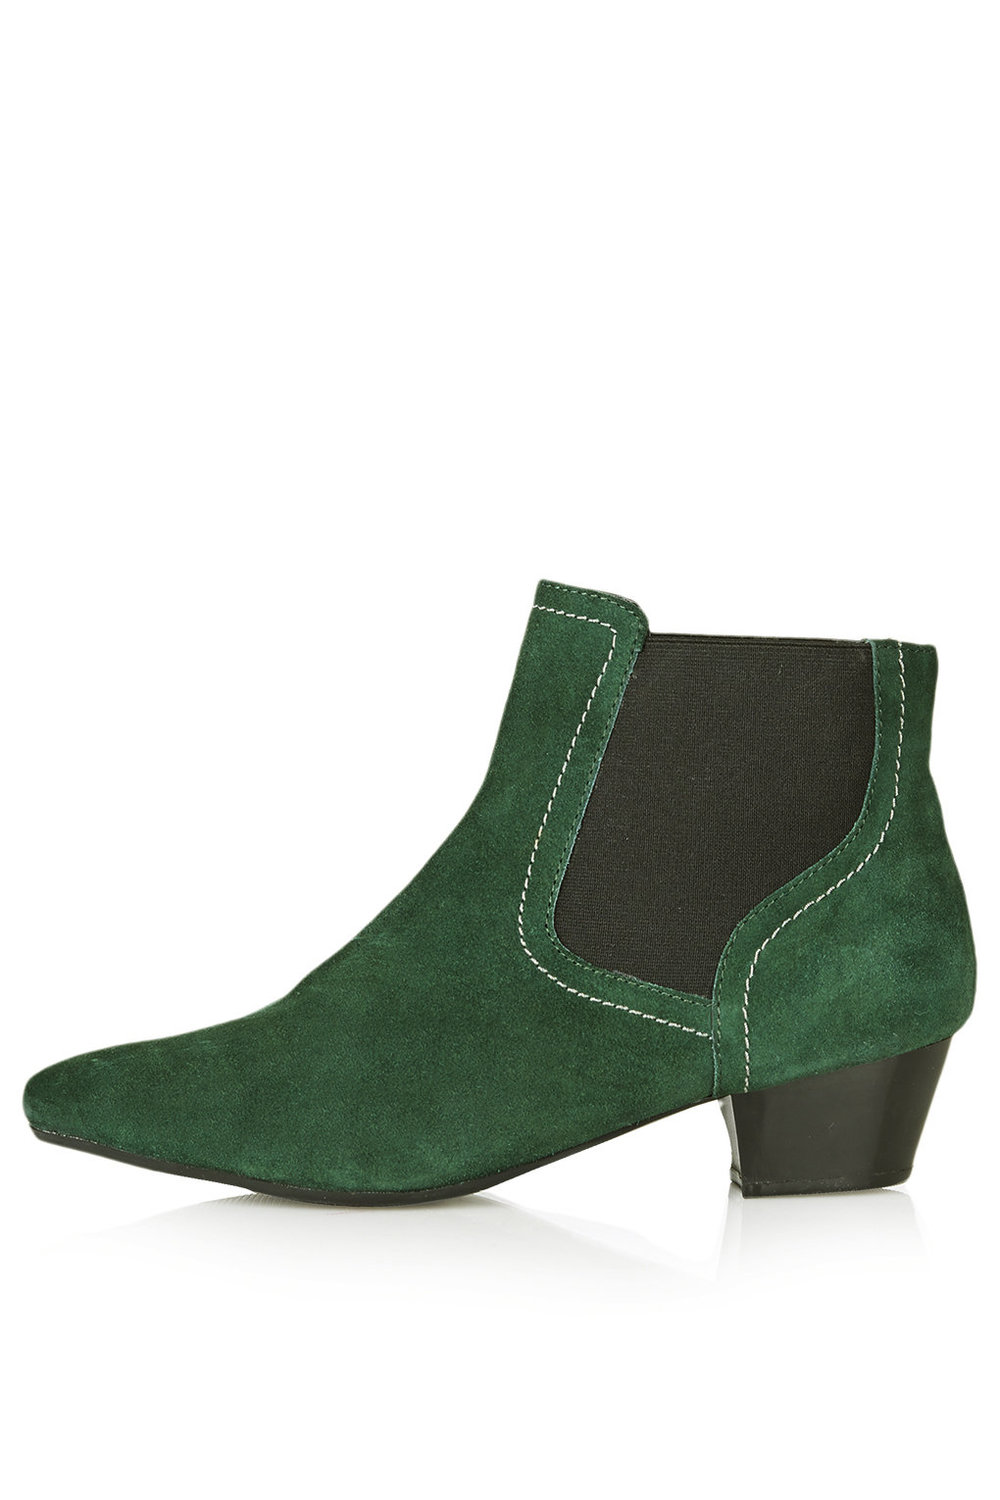 One of my current obsessions: BASIC Chelsea Boots Topshop USA. $65. I just ordered a pair for myself.